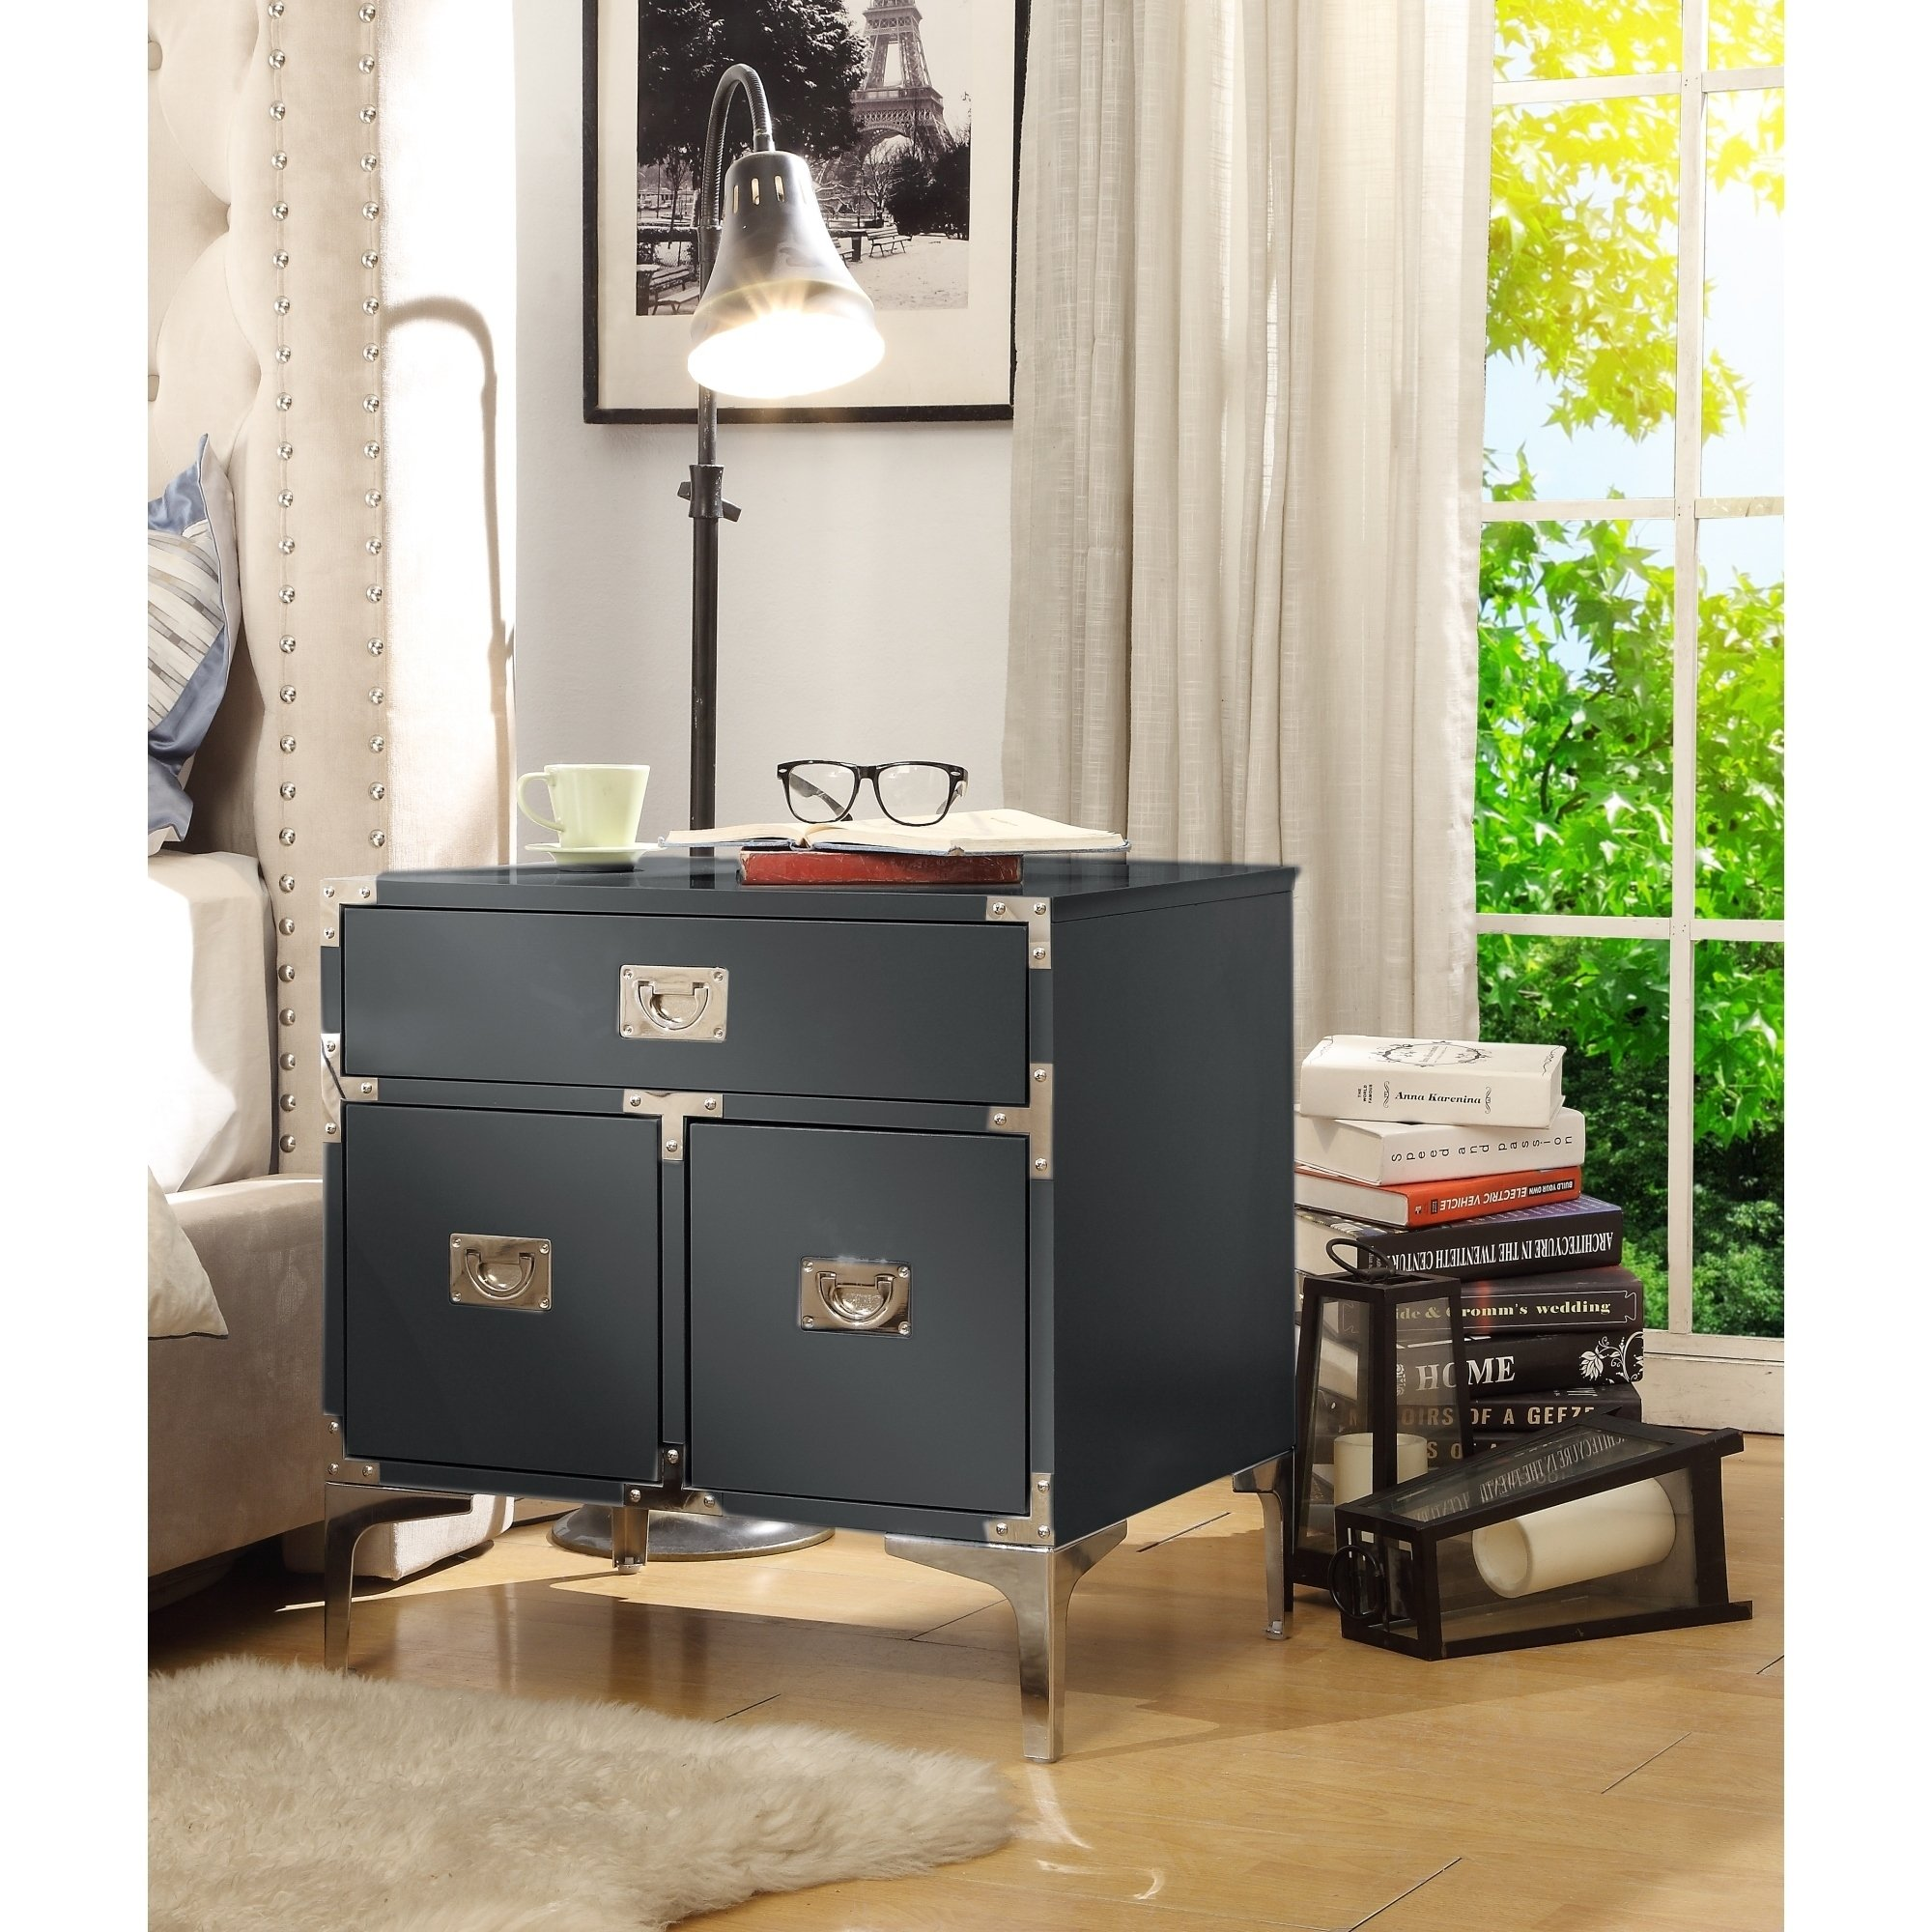 joliet wood lacquer chrome table accent nightstand mdf drawers free shipping today patio sofa clearance teal red bedside lamps long skinny astoria grand bedroom furniture two